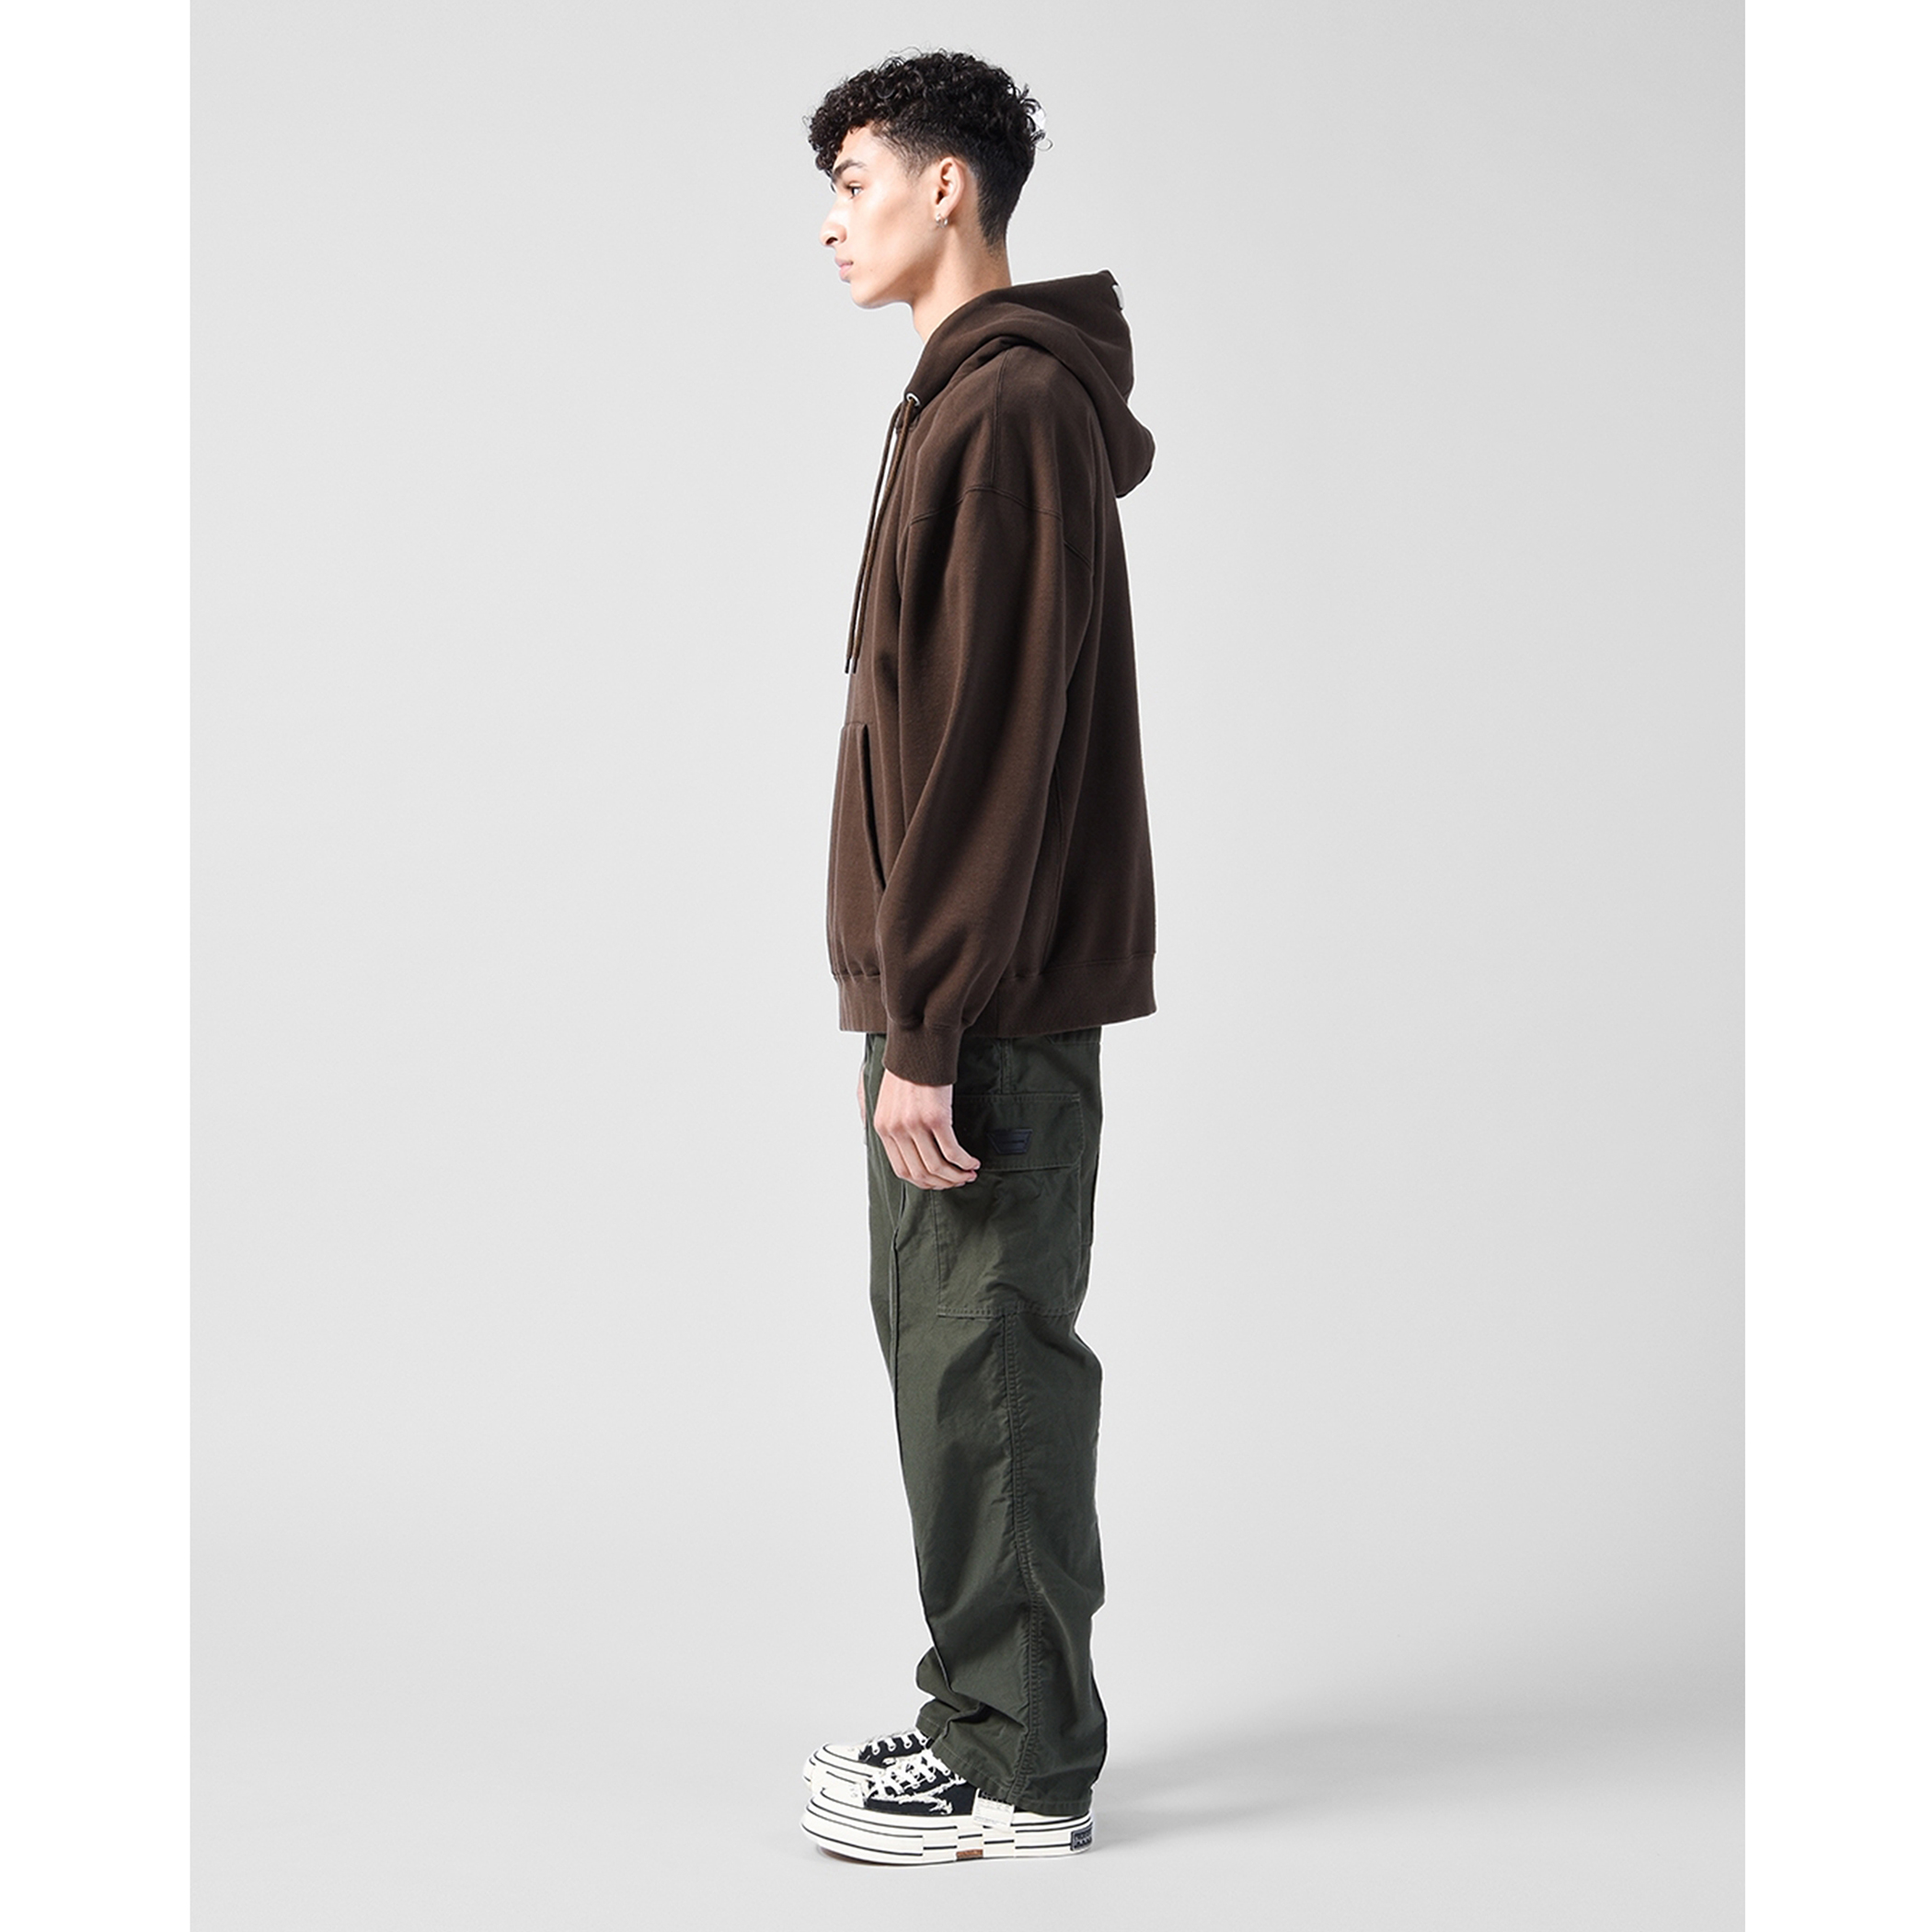 FSO EMBRO HOODIE 詳細画像 Brown 2